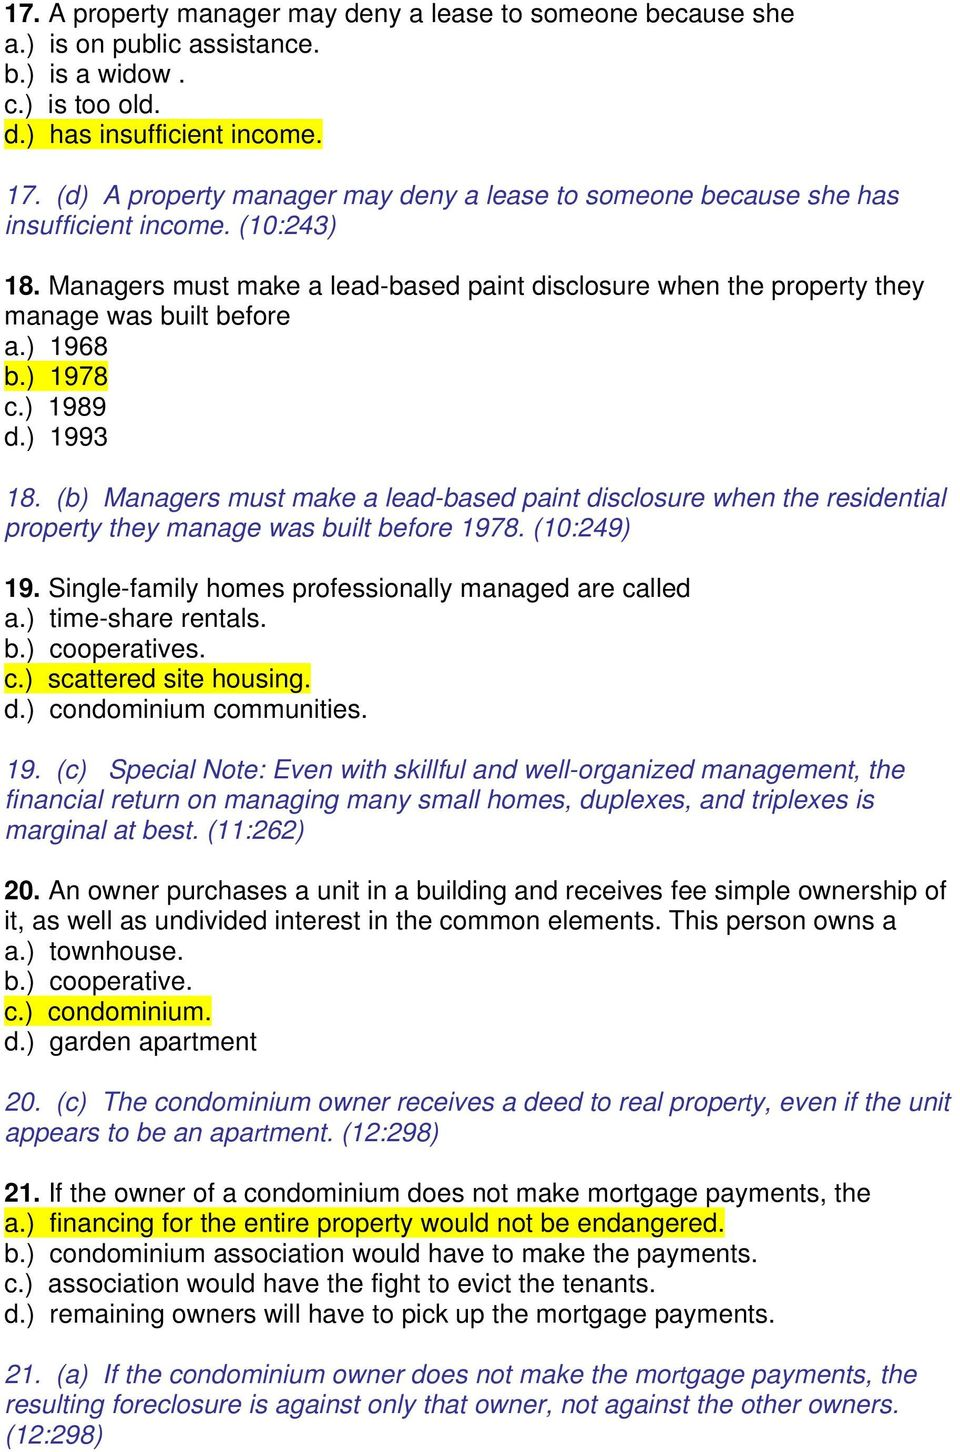 ) 1968 b.) 1978 c.) 1989 d.) 1993 18. (b) Managers must make a lead-based paint disclosure when the residential property they manage was built before 1978. (10:249) 19.